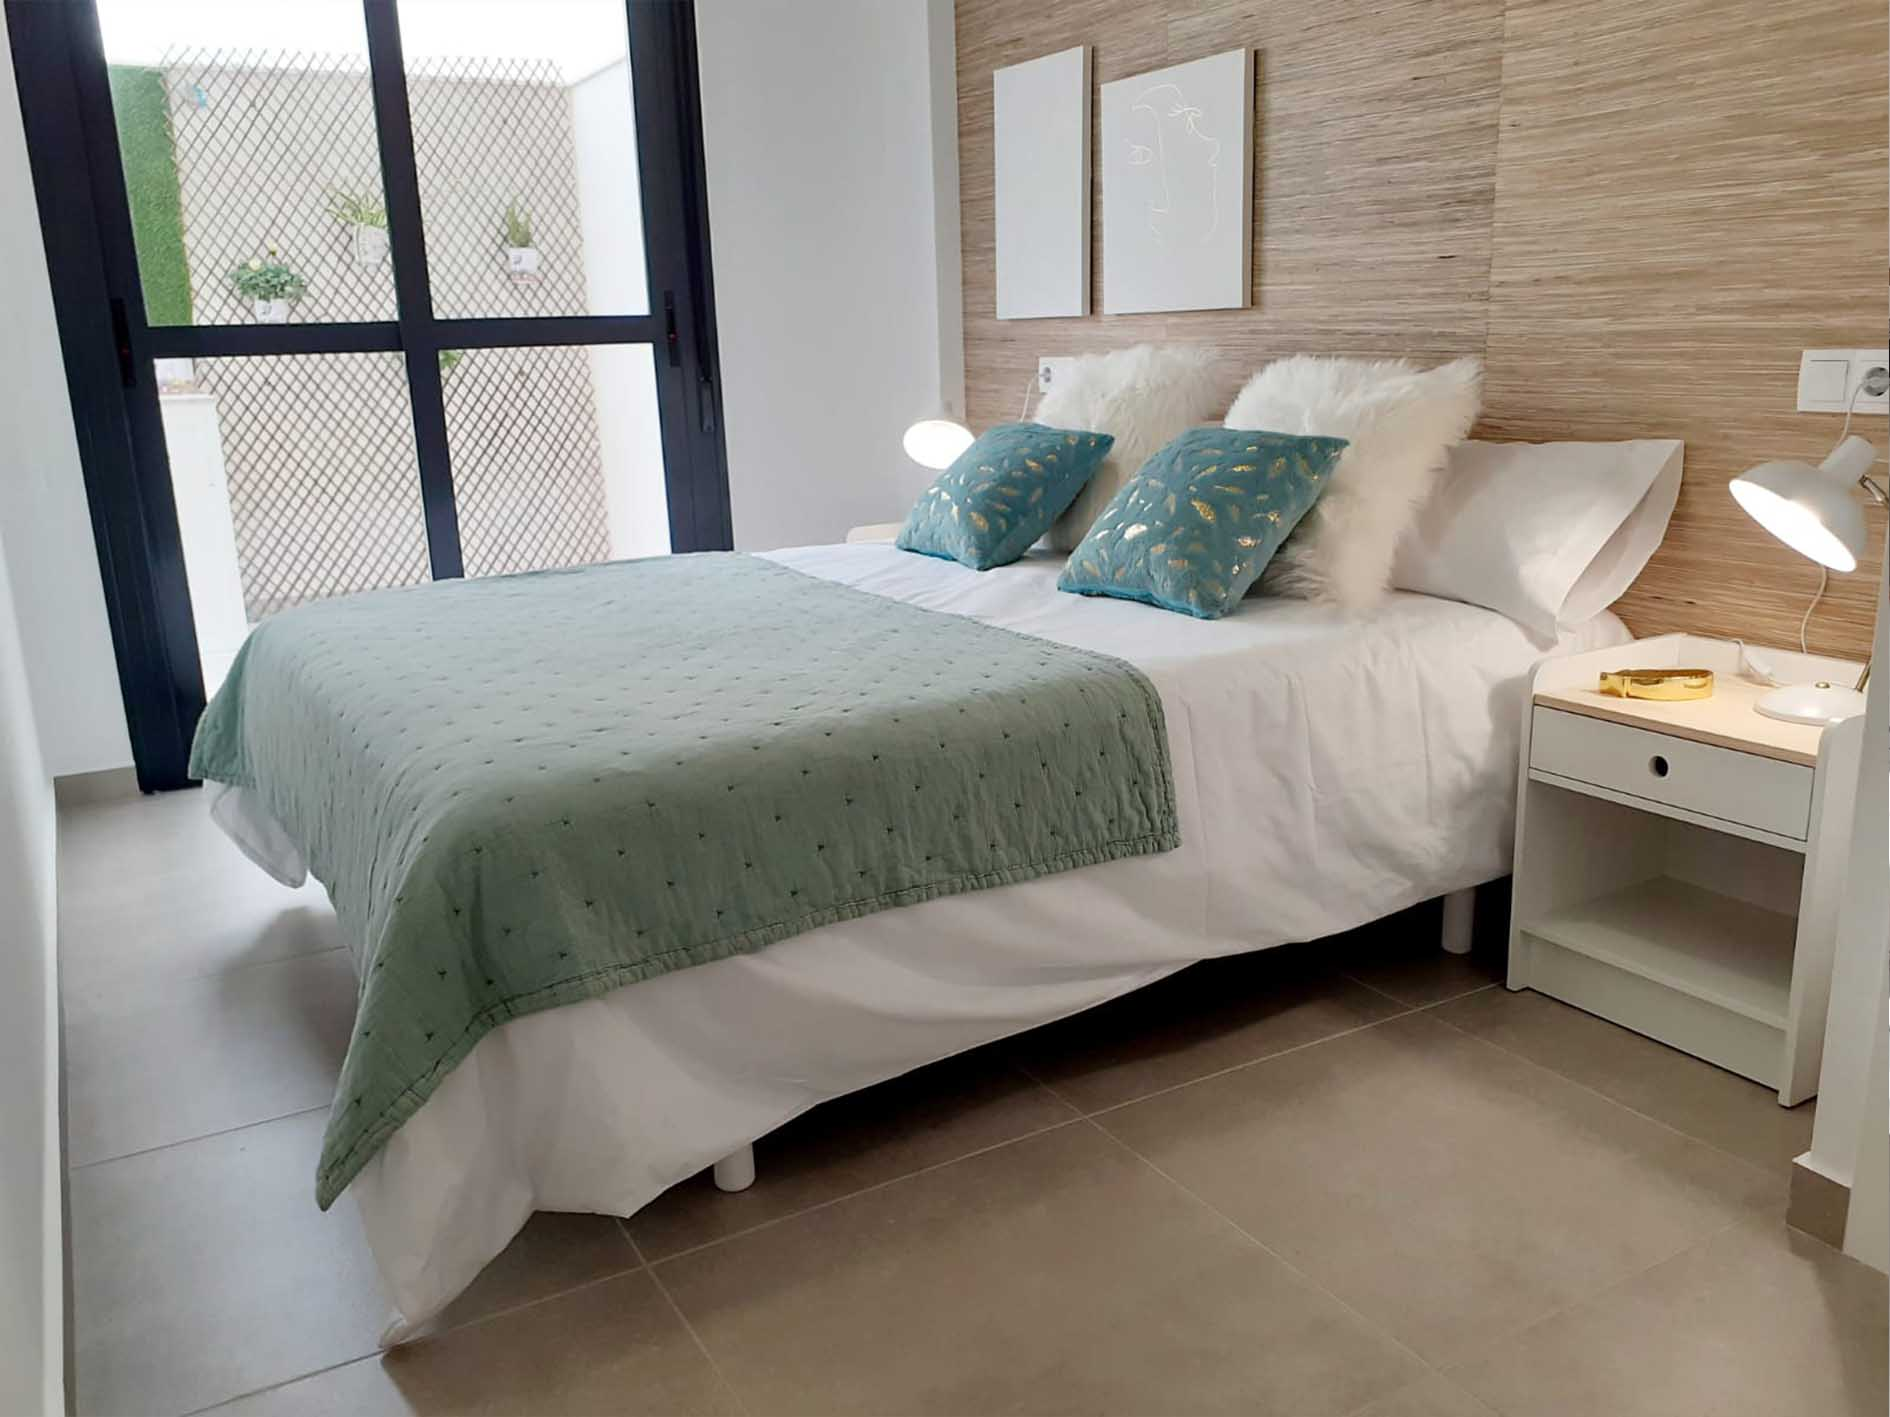 immobilier neuf espagne costa blanca on-d13 levansur home three chambre 1